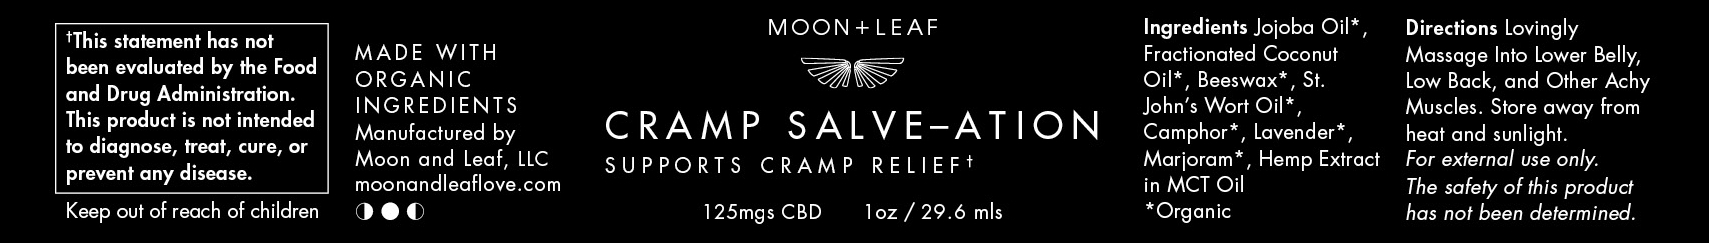 Client: Moon + Leaf · Packaging (Black background to show text only)